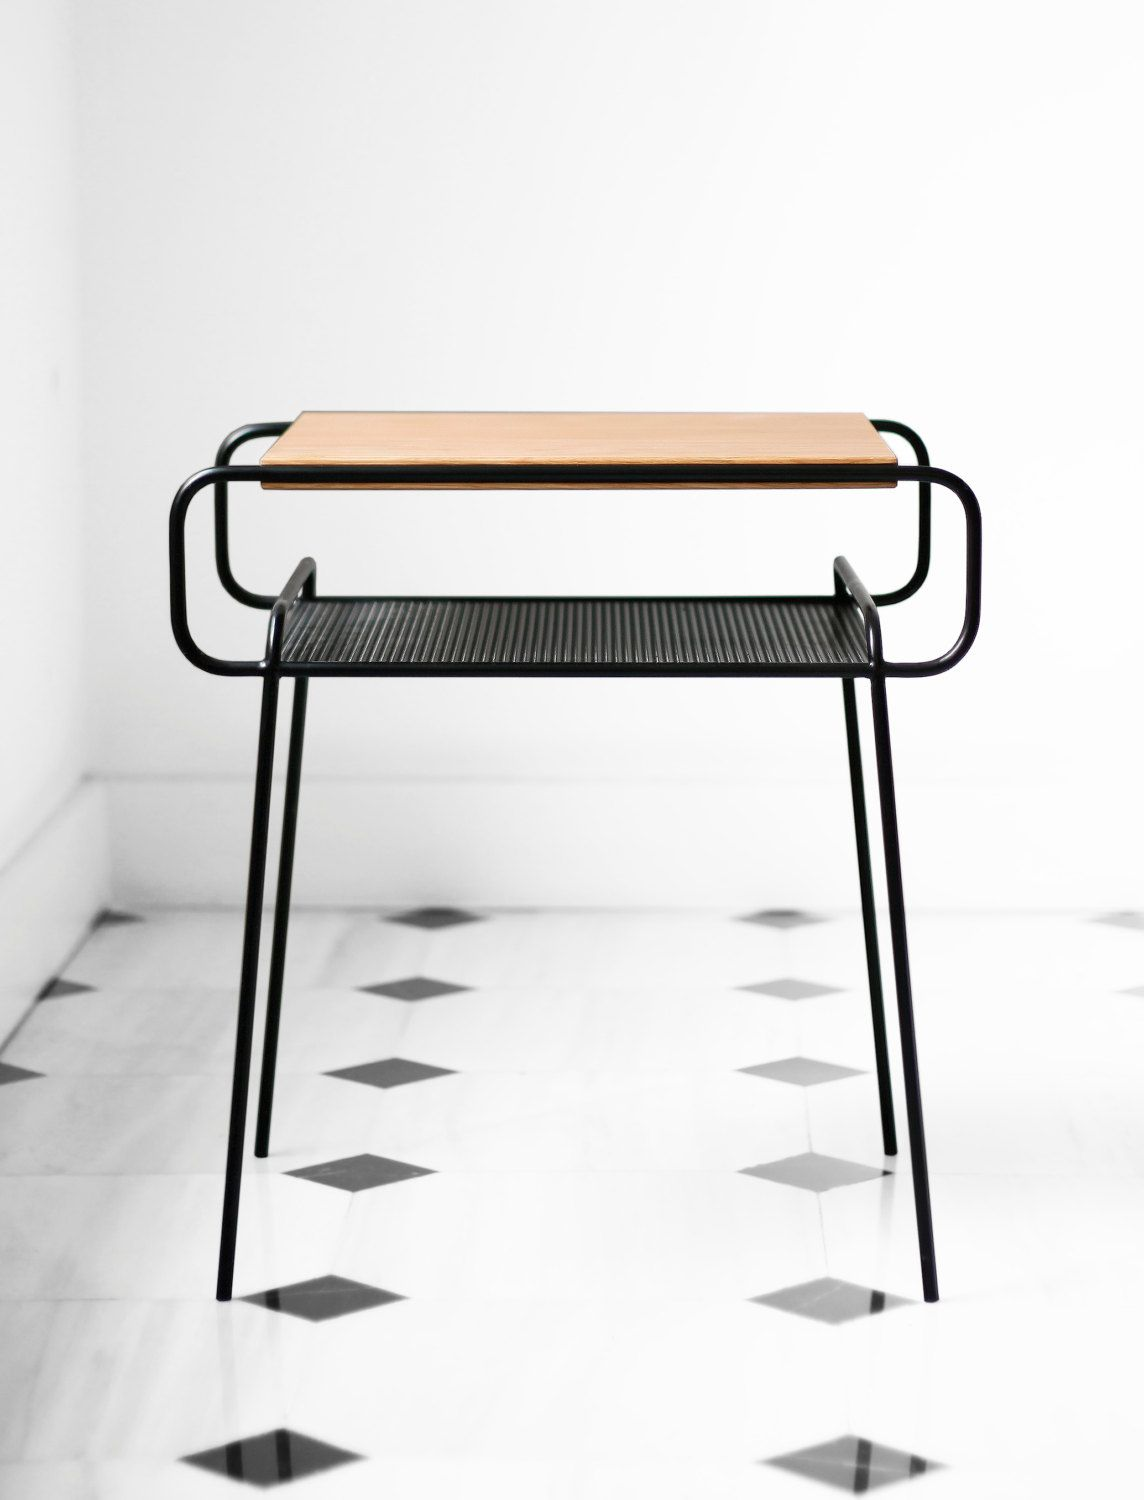 Black Metal Bedside Tables: 2 Units Nightstand / Bedside Table, Black Lacquered Iron